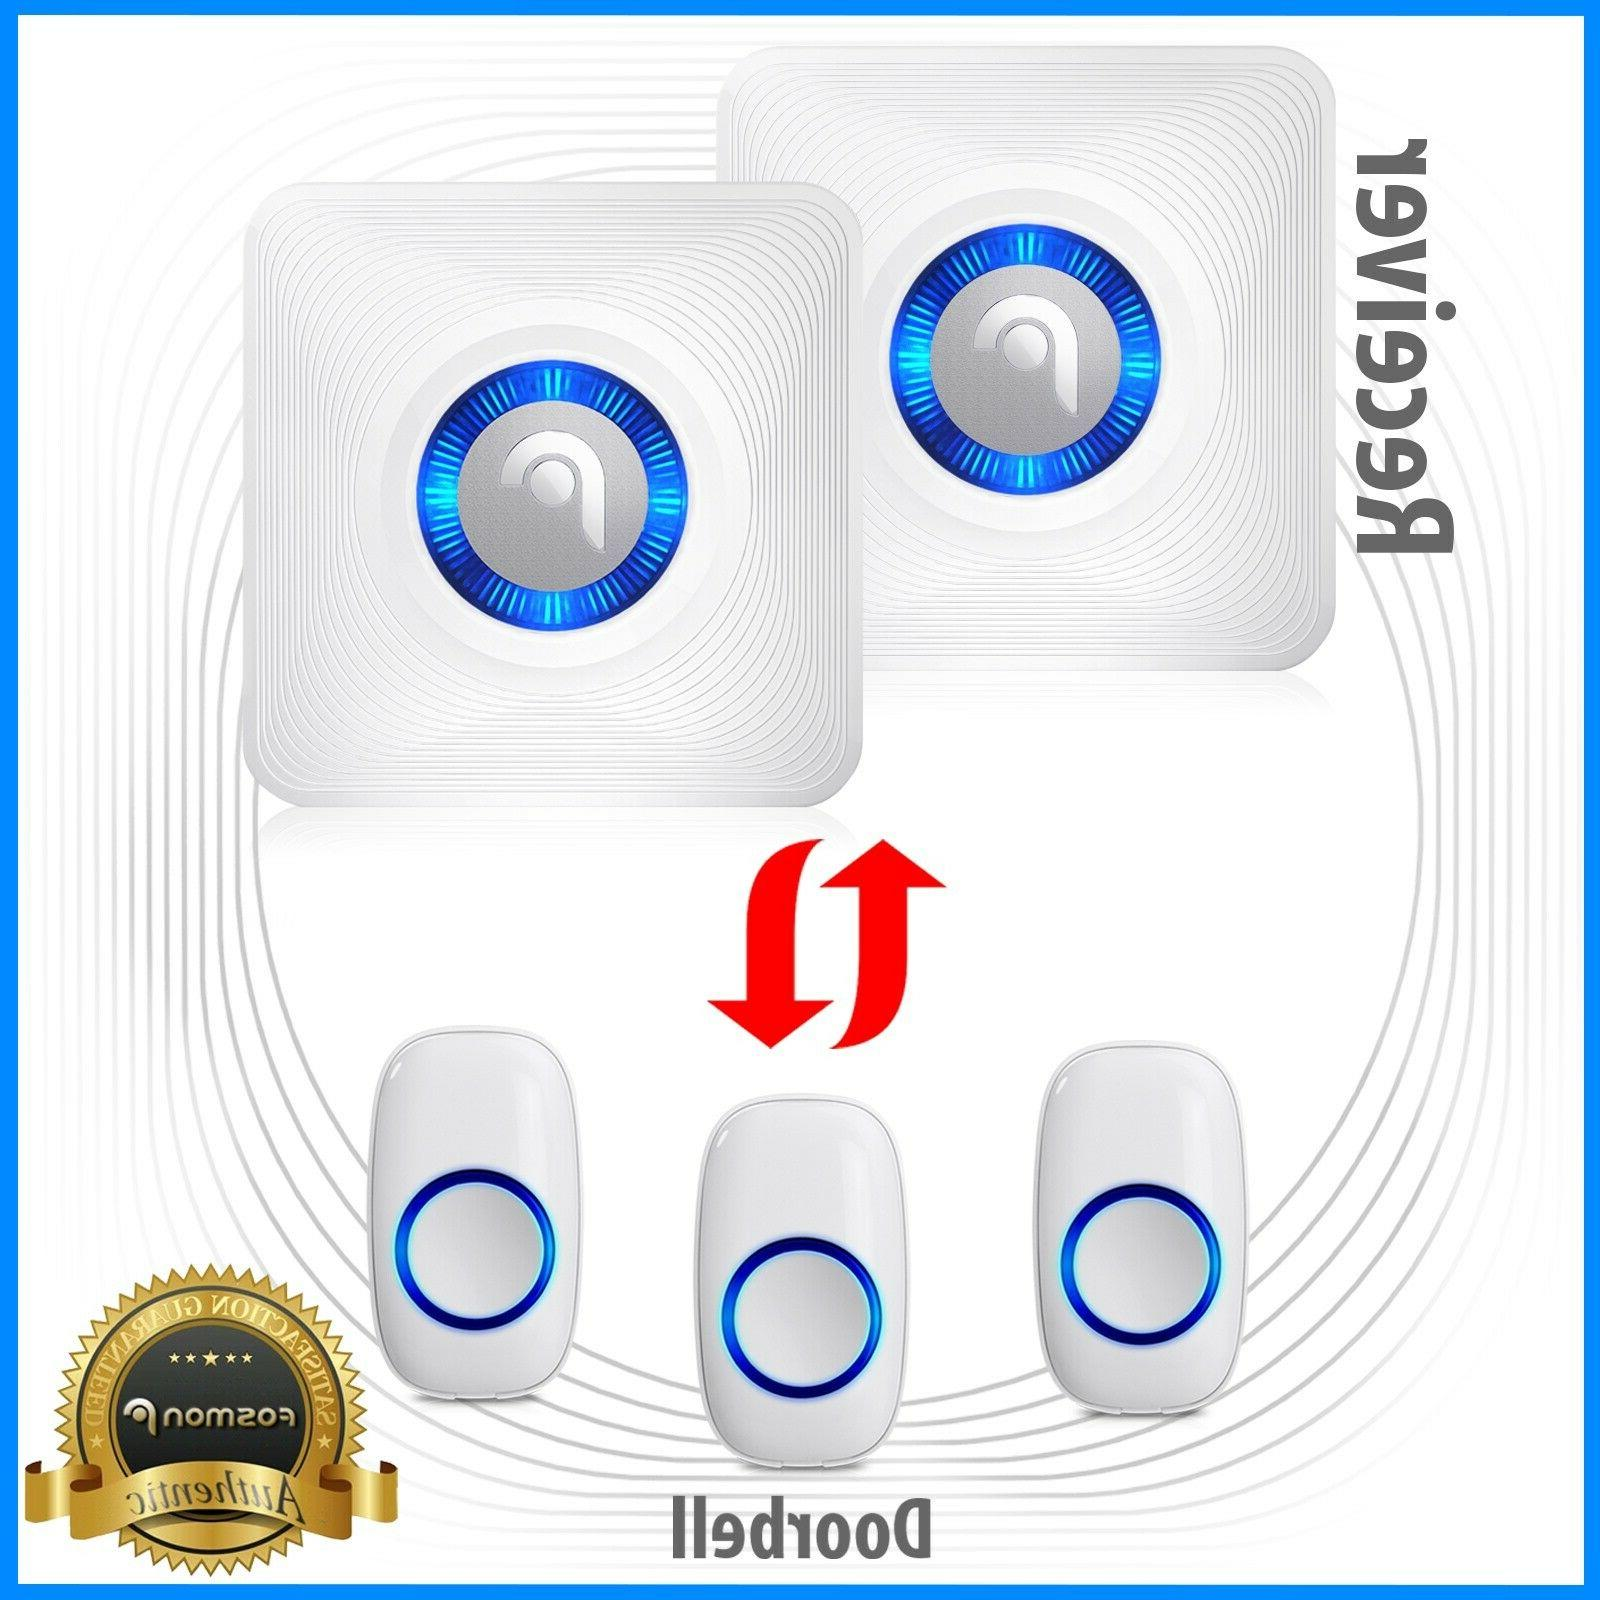 1000ft water resistant wireless doorbell chime plug